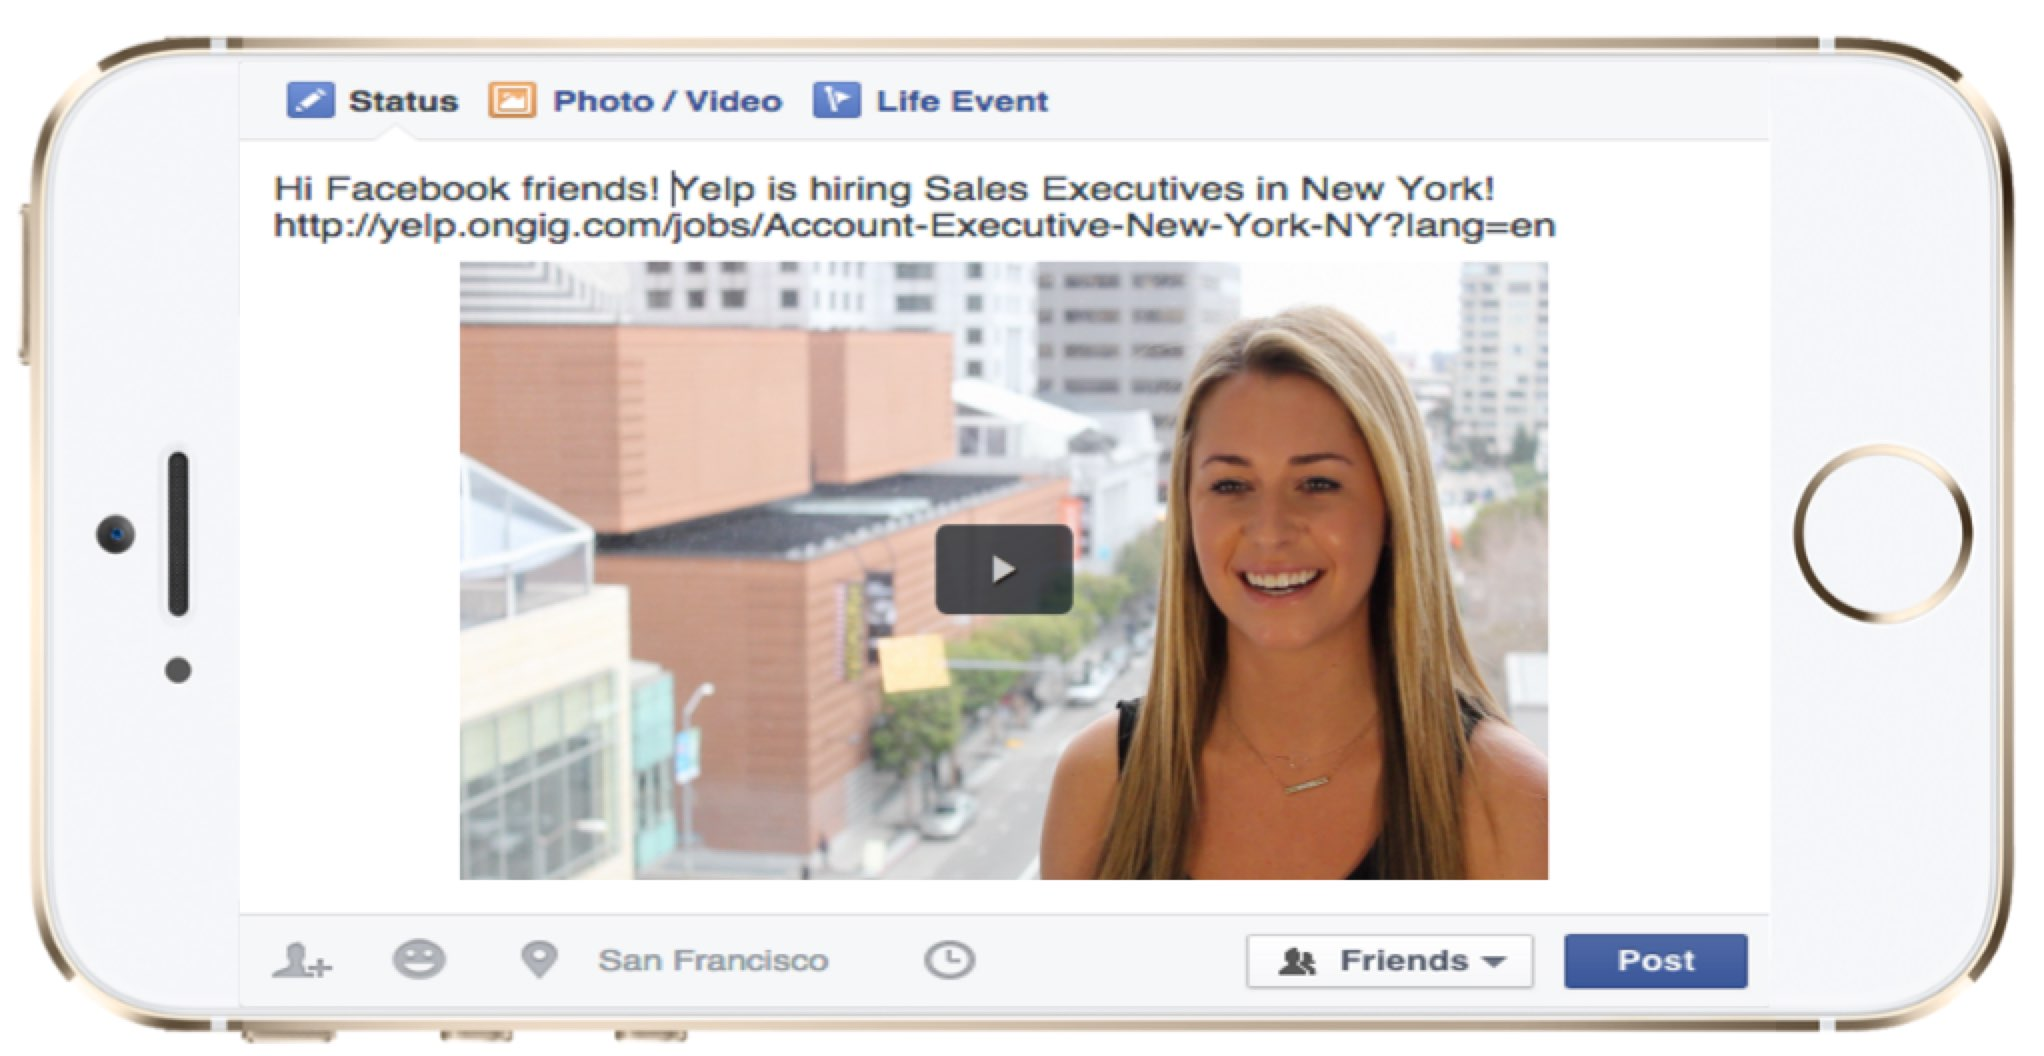 Social Recruiting the-news-feed-effect-to-build-pipeline-through-facebook-social-sharing